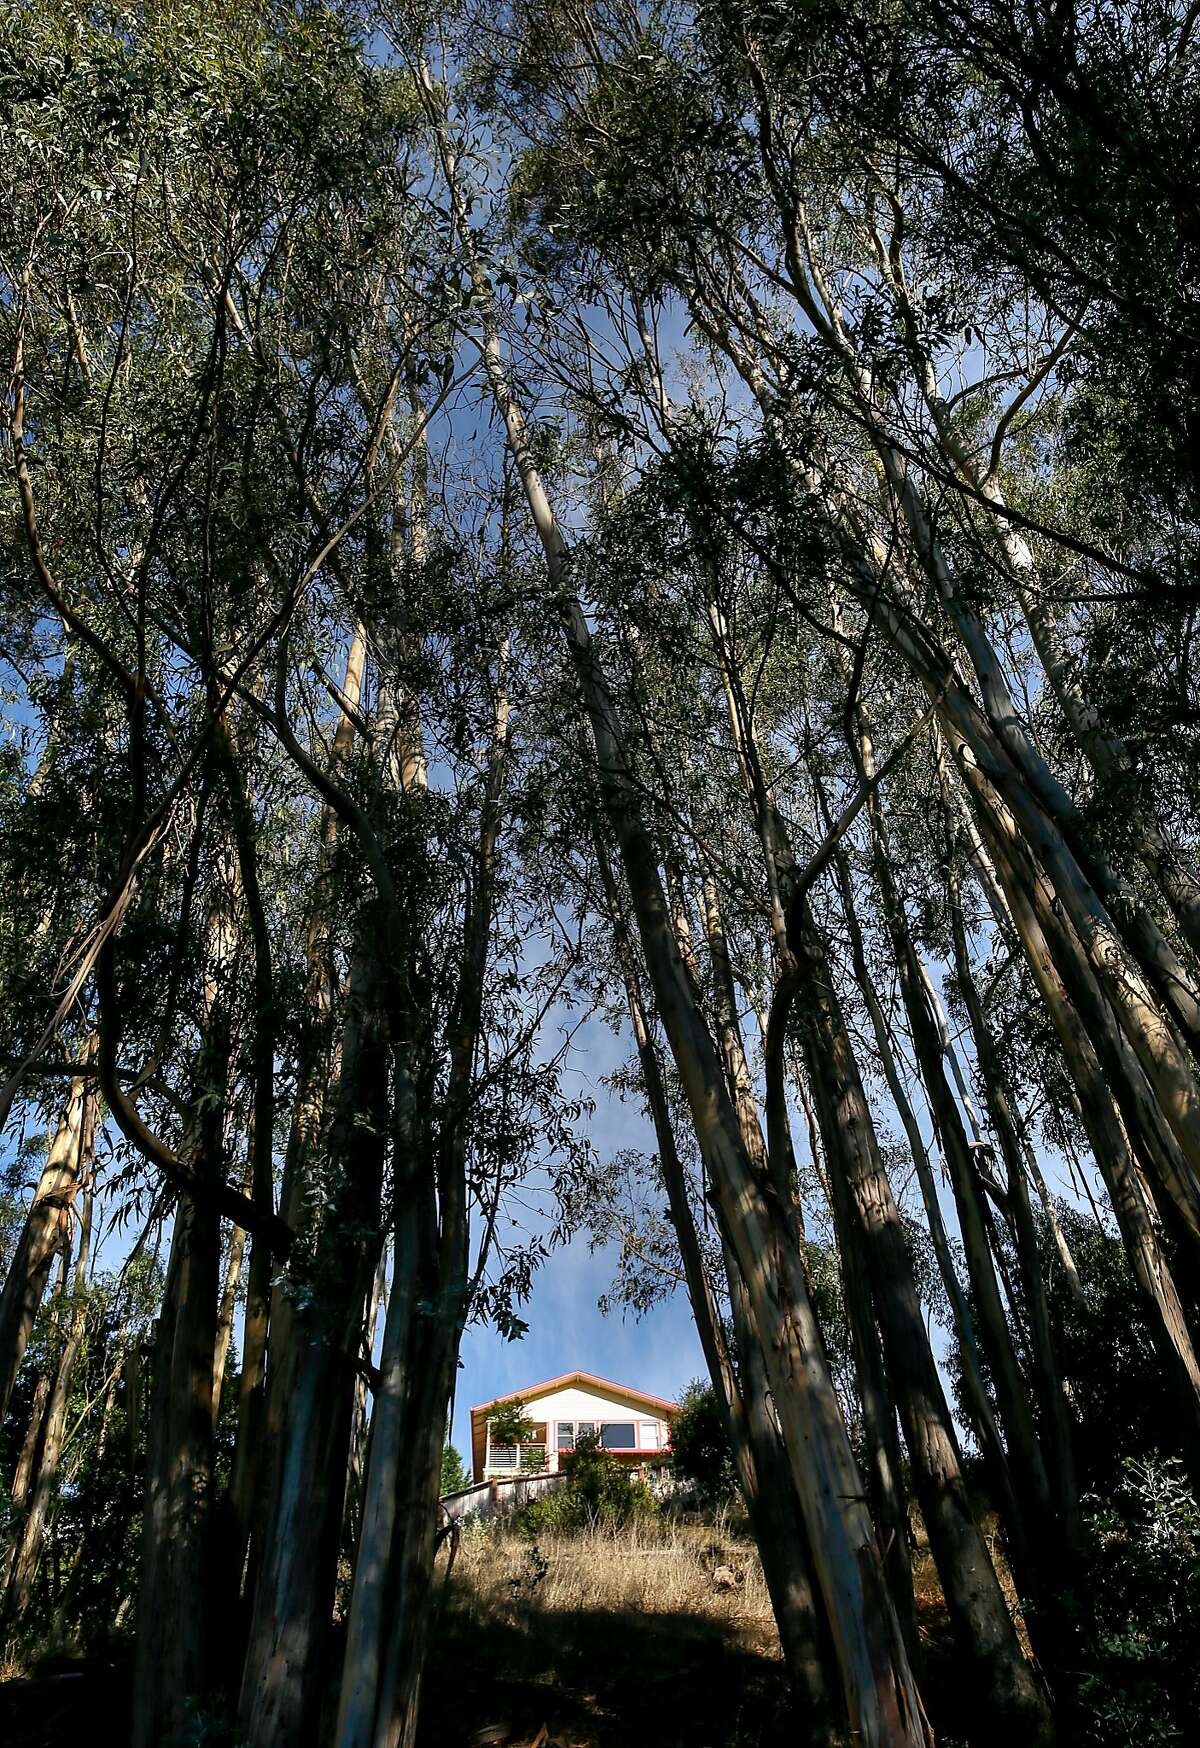 Eucalyptus trees stand tall along Caring cross road in Oakland, California., as seen on Wednesday October 19, 2016, twenty-five years after the Oakland hills fire.